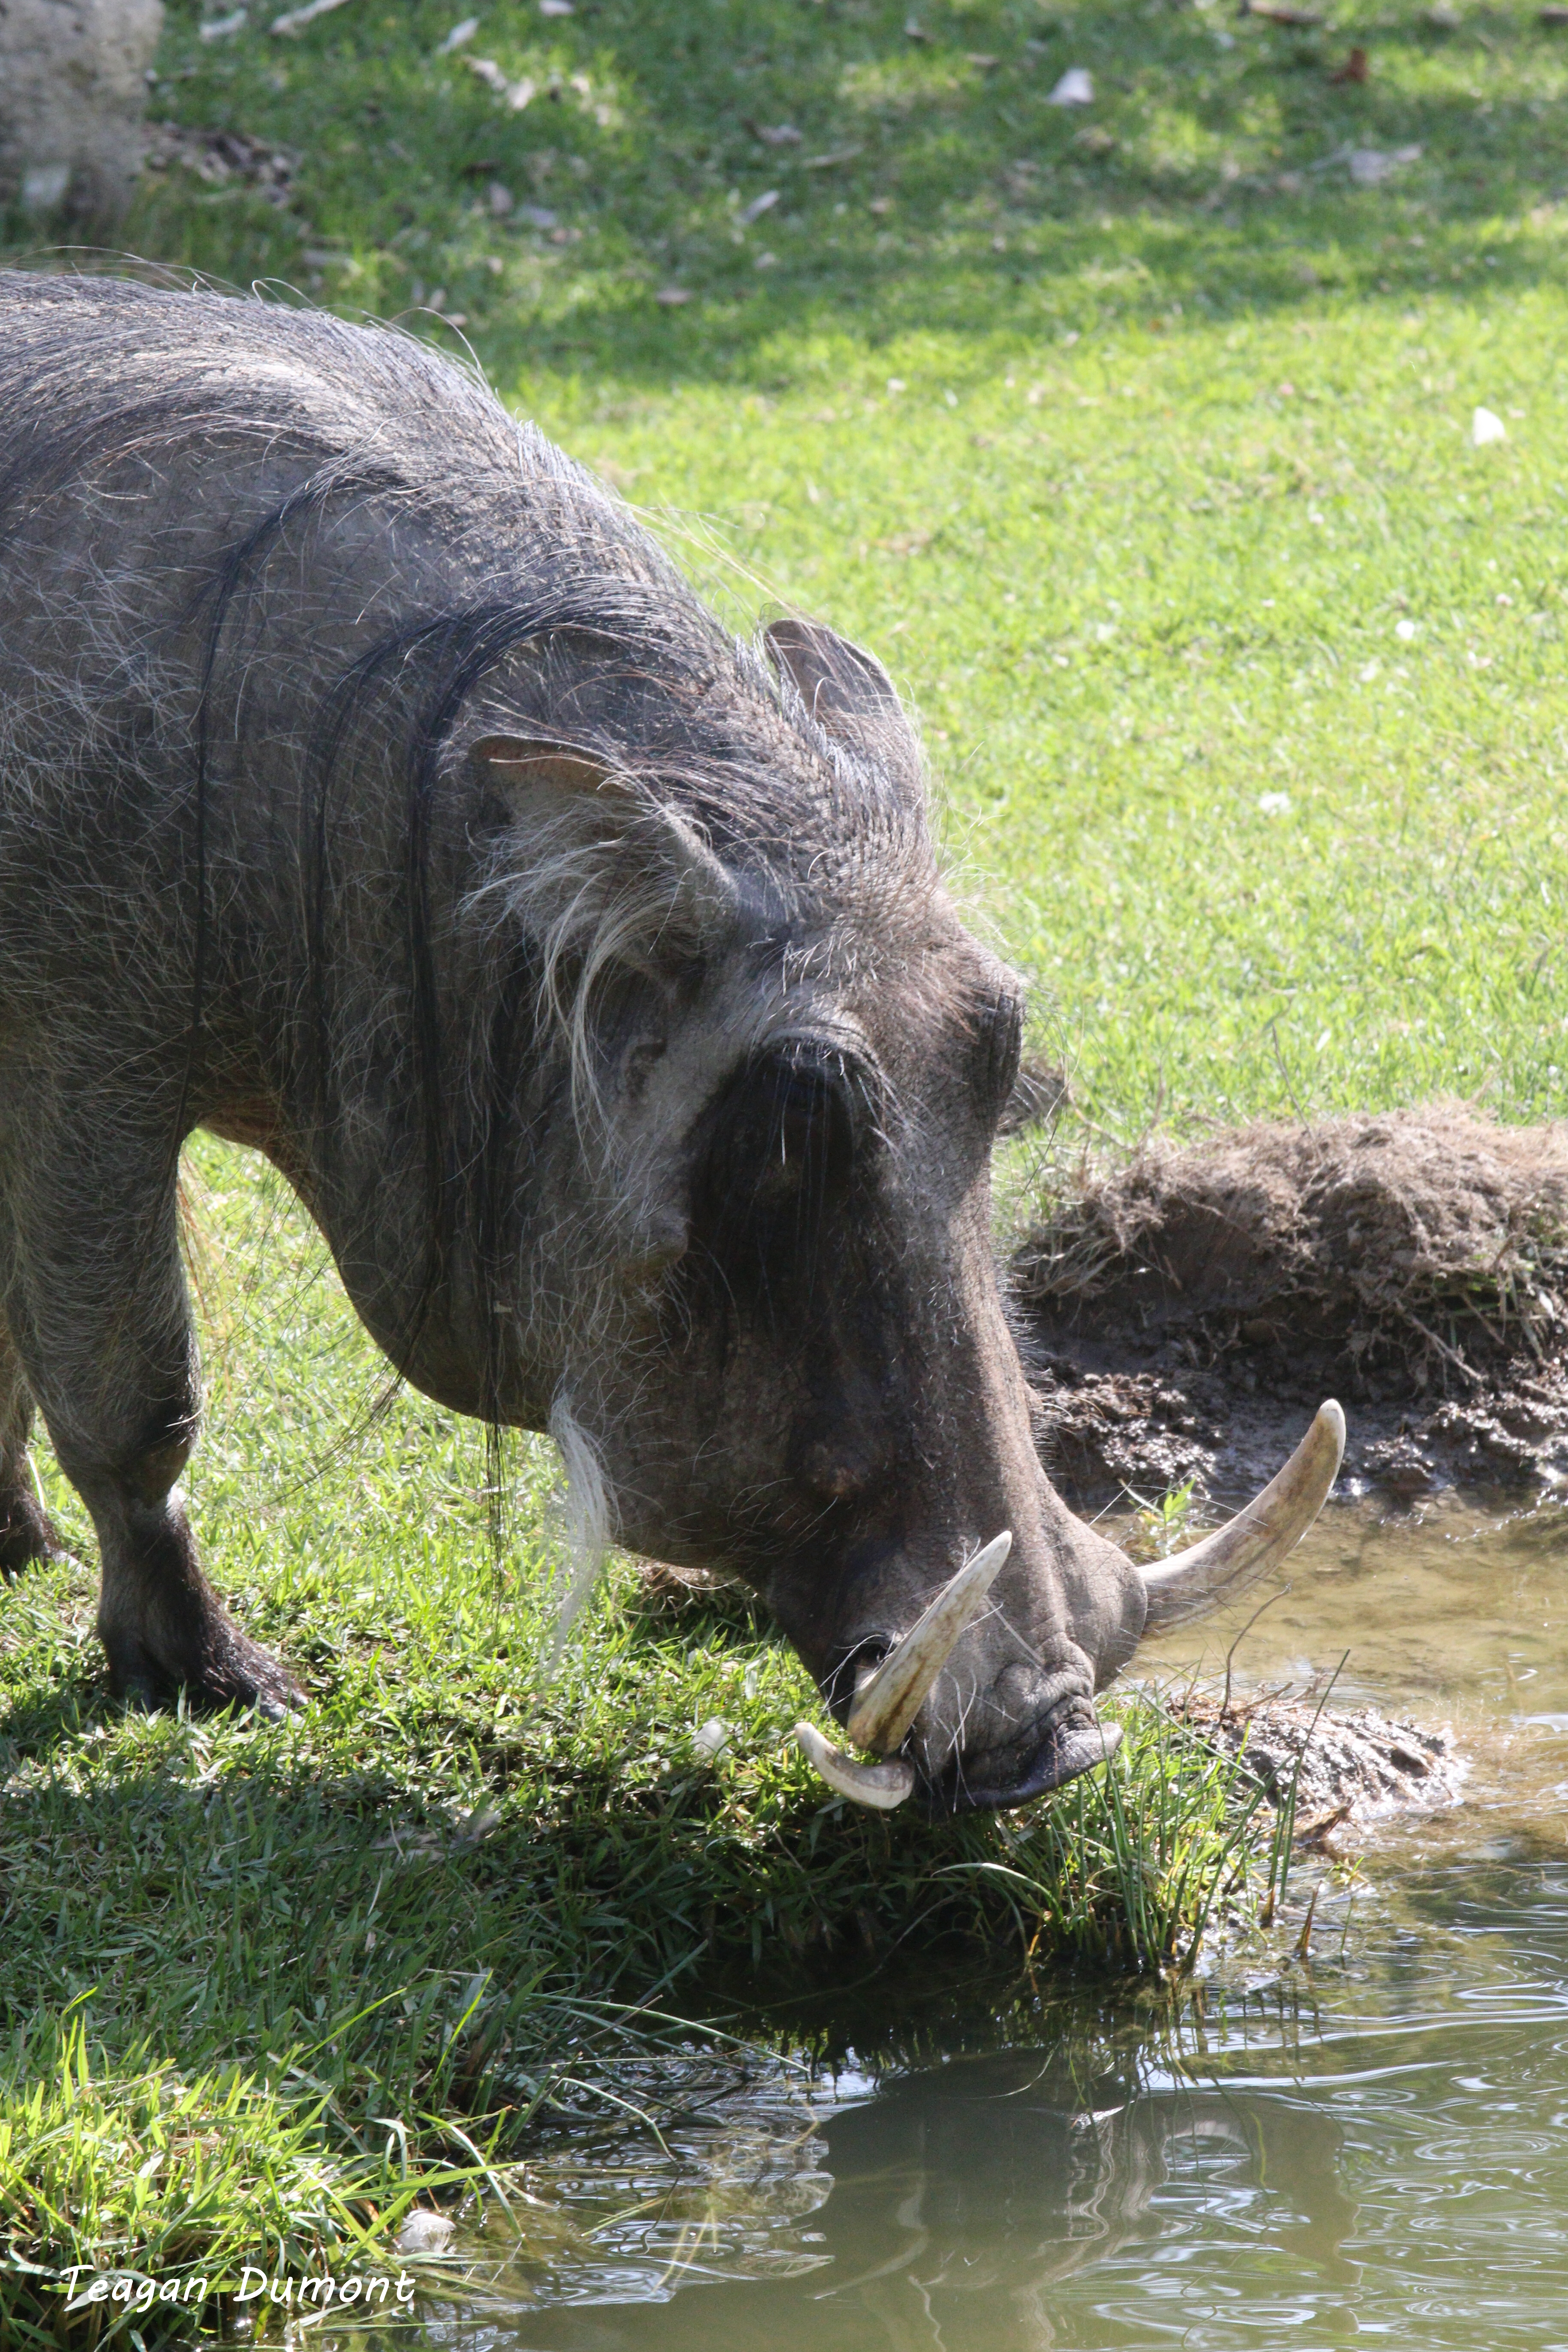 Willy the Warthog